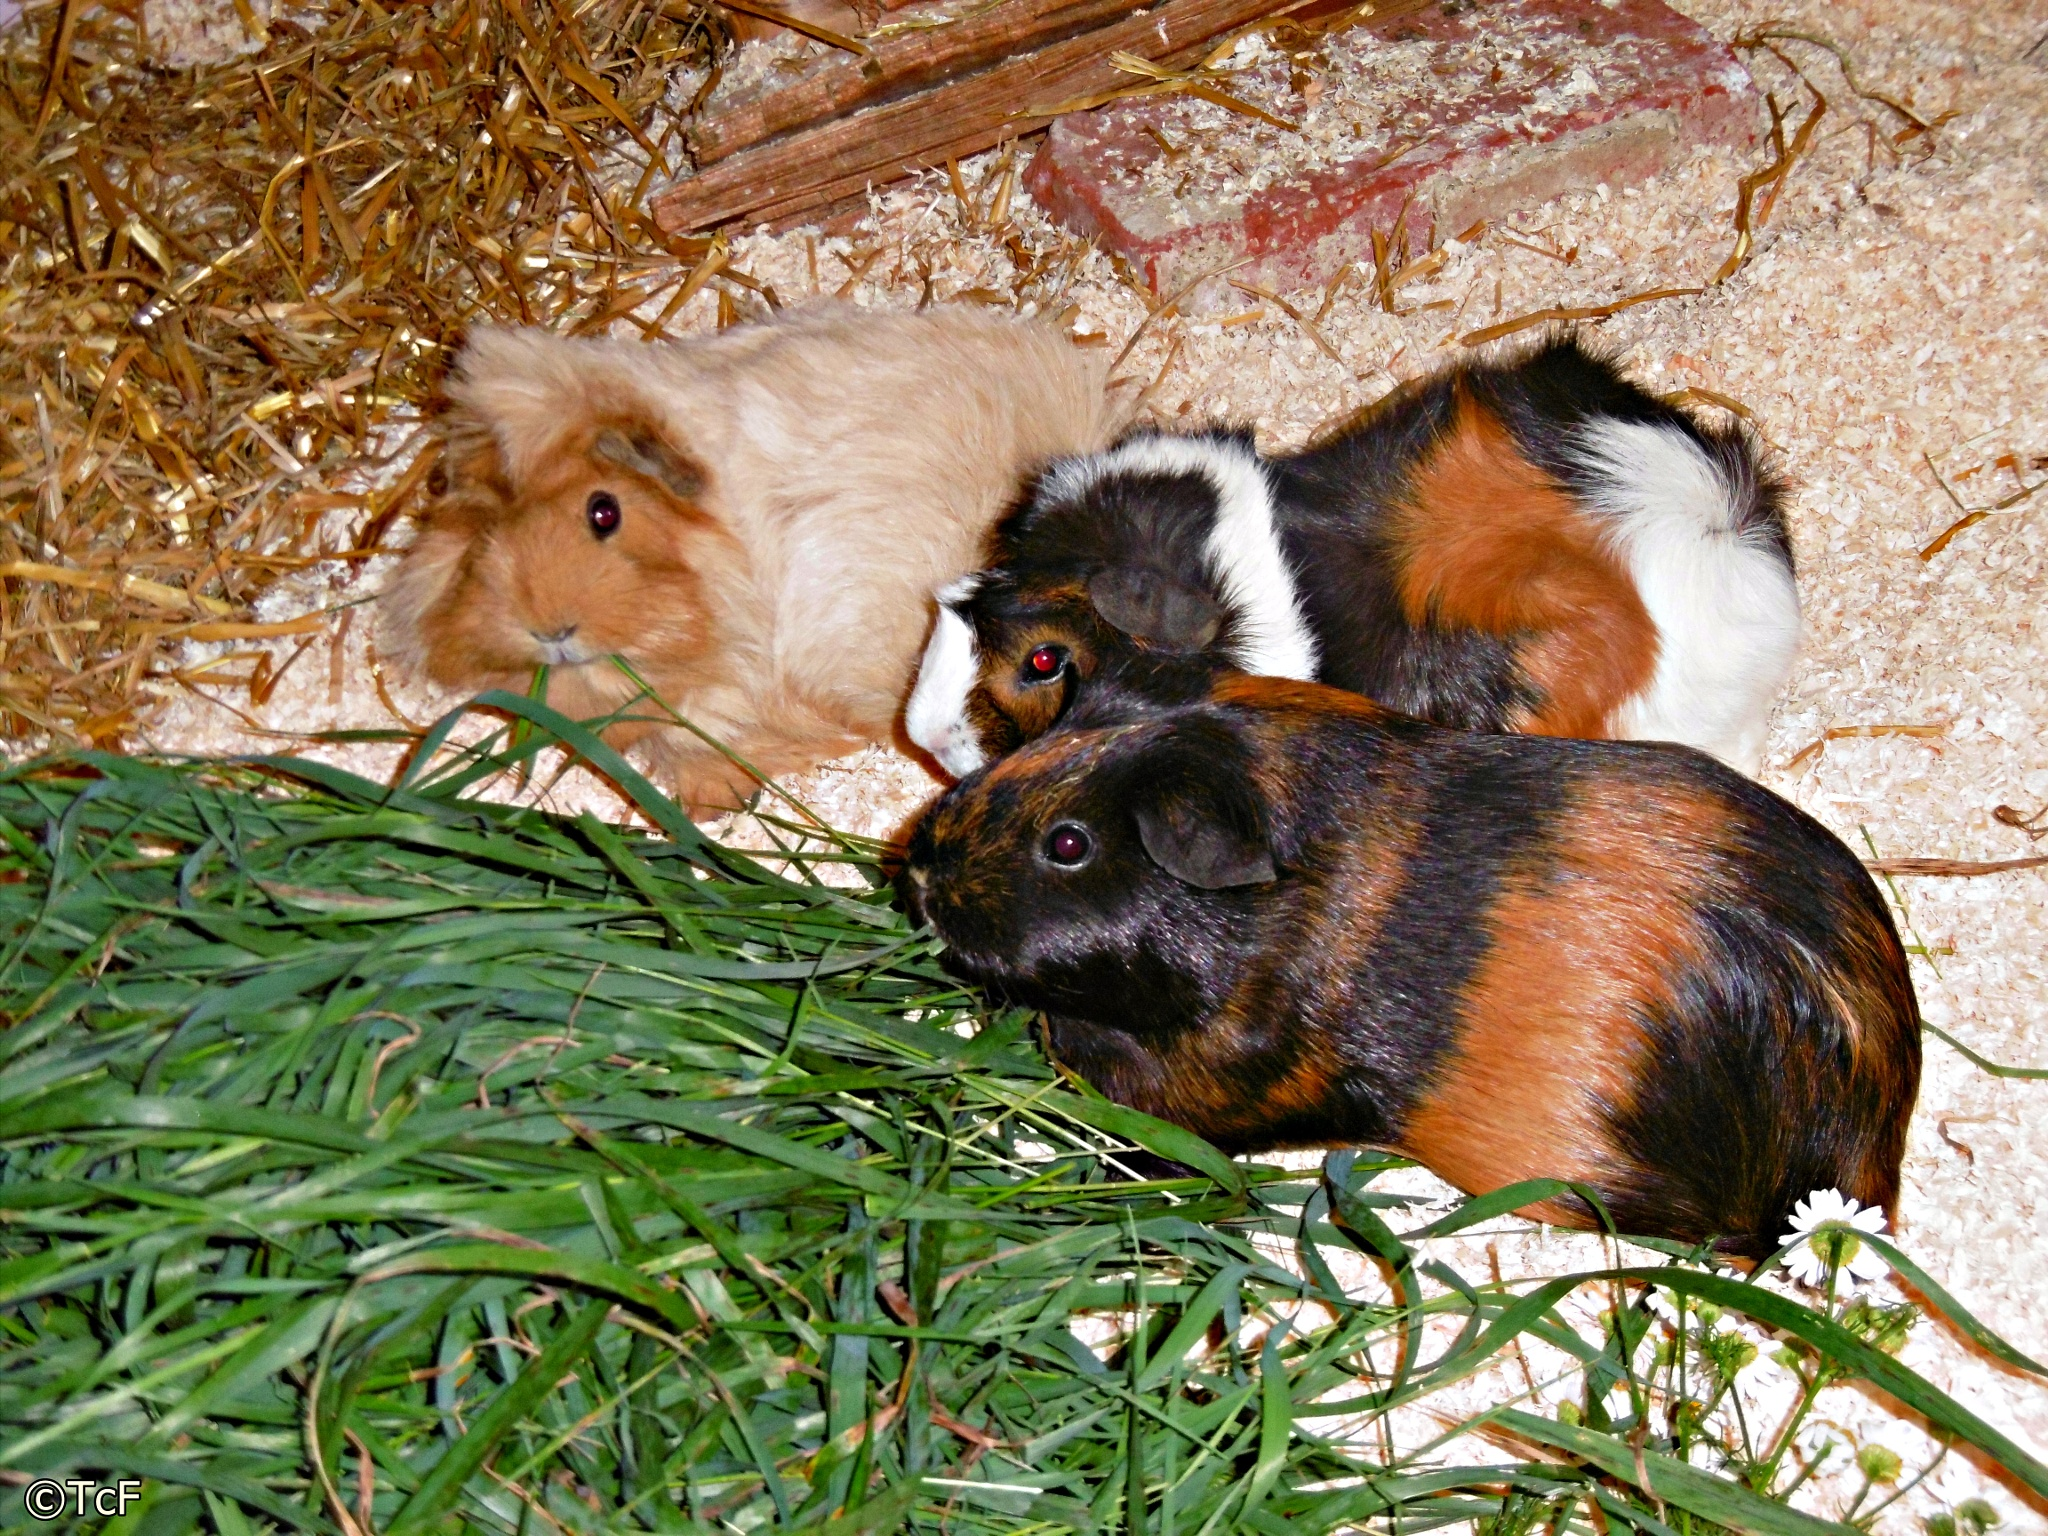 guineapigs by Tanja Christine Fischer